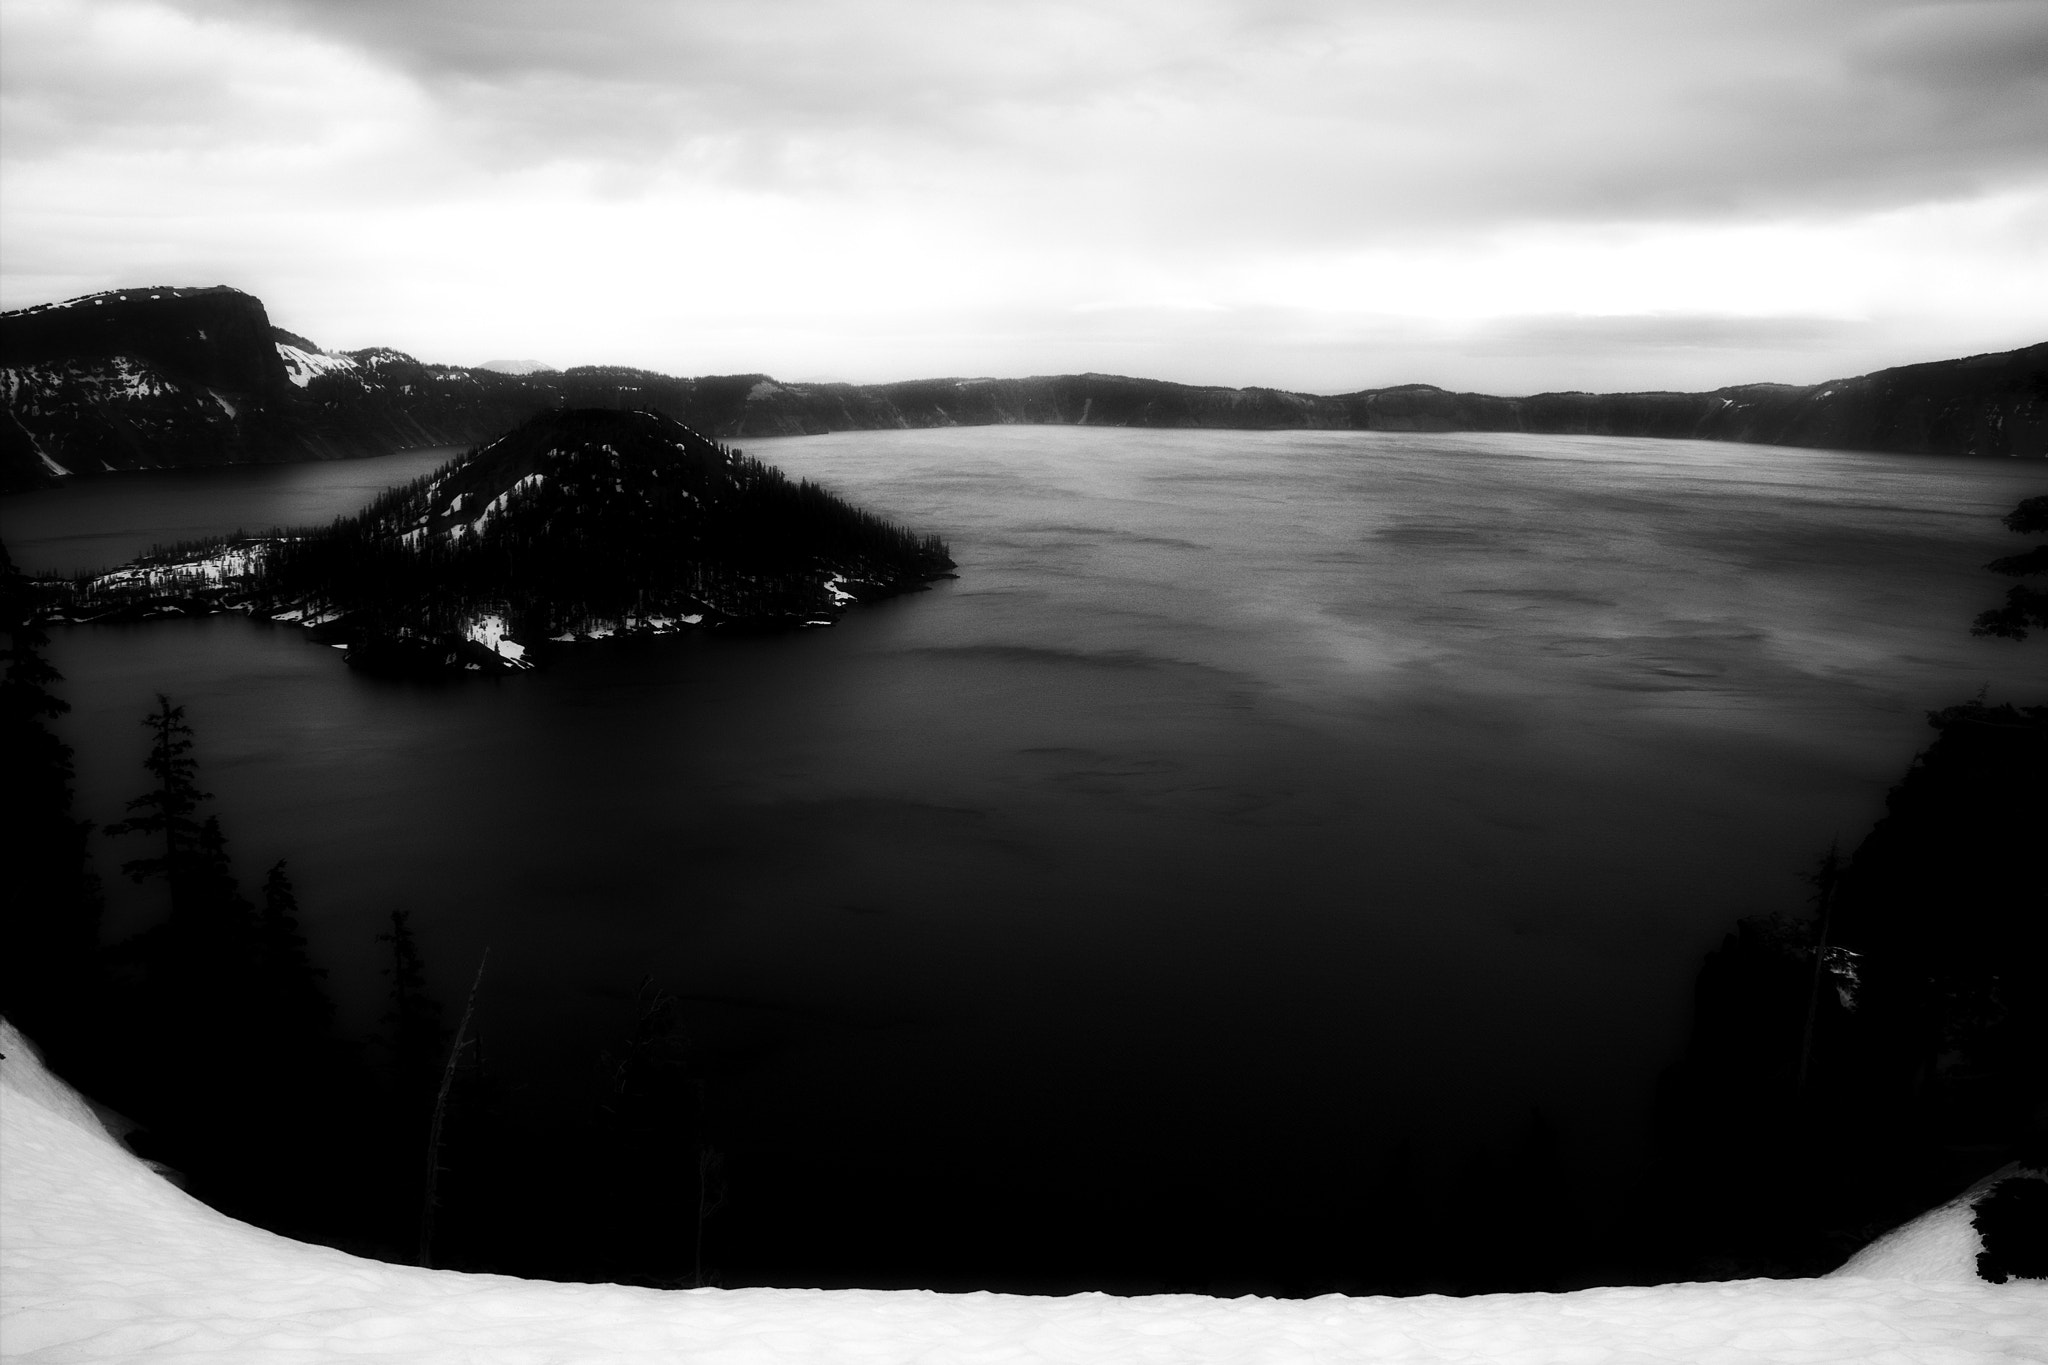 Photograph Crater Lake in Black and White by Kindra Martinenko on 500px